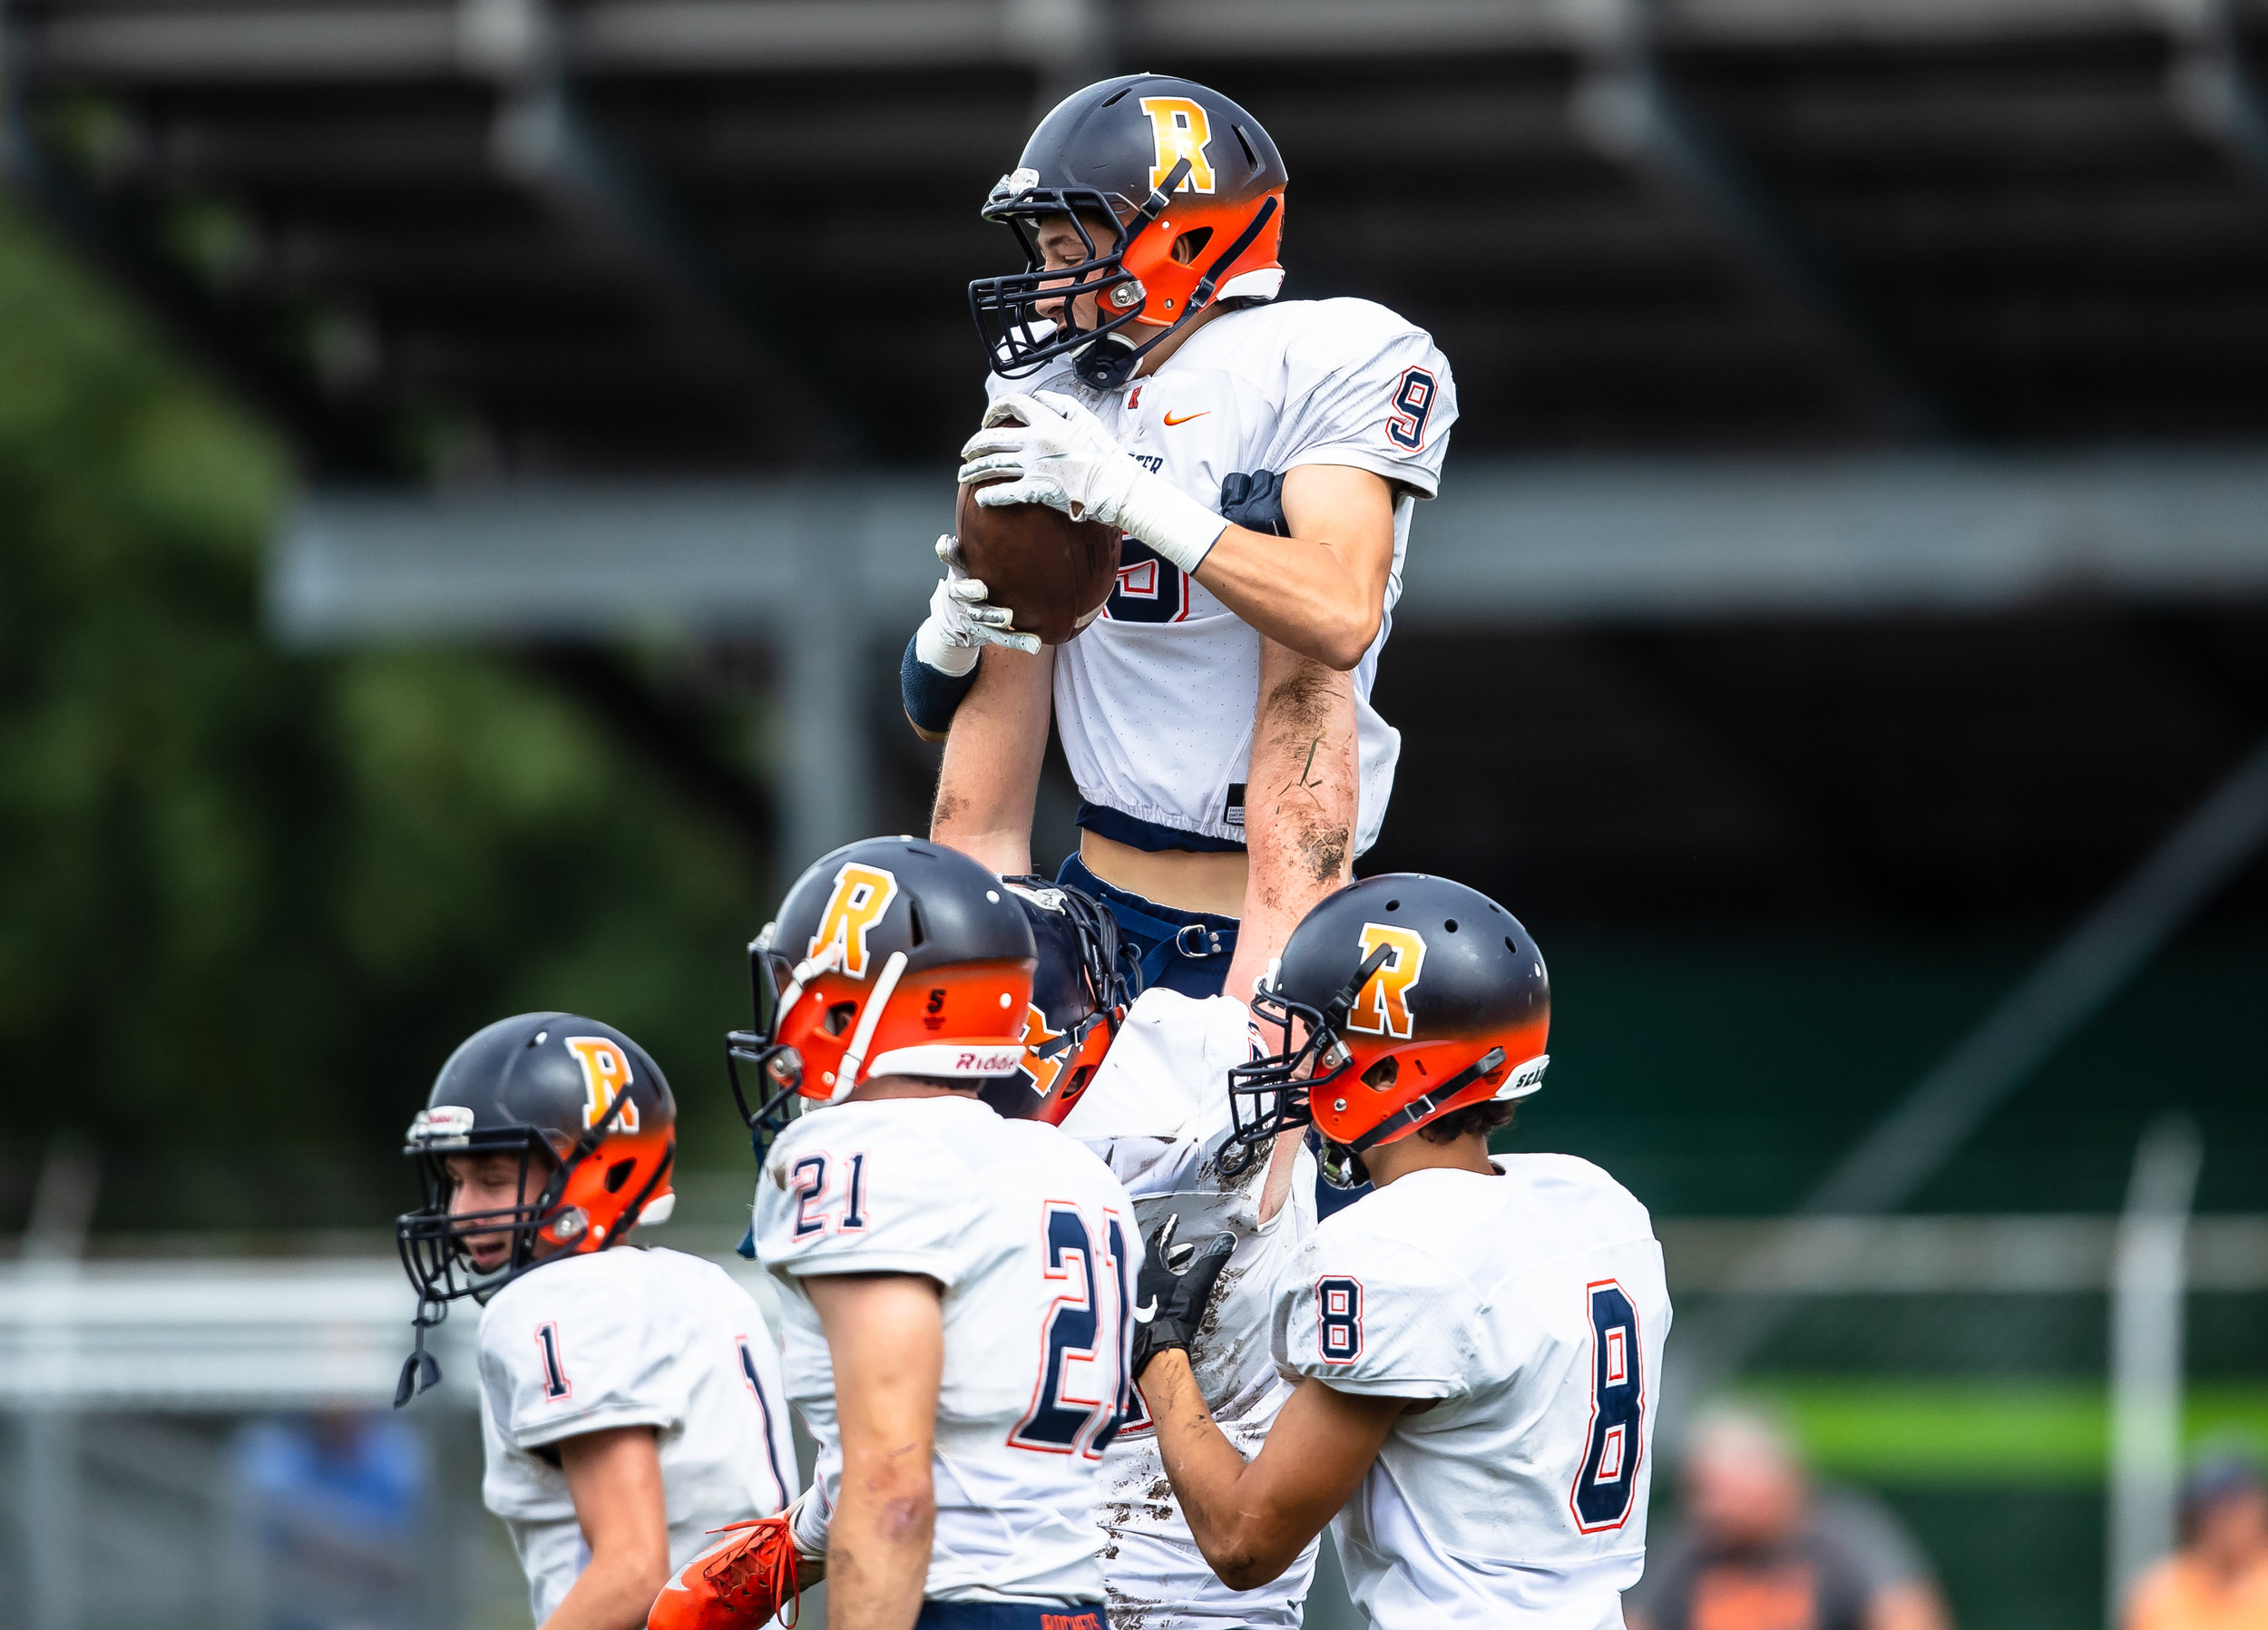 Rochester's Clayton Cornett (9) is hoisted up by Rochester's Camden Ramsey (71) to celebrate his touchdown against Springfield in the first half at Memorial Stadium, Saturday, Oct. 6, 2018, in Springfield, Ill. [Justin L. Fowler/The State Journal-Register]